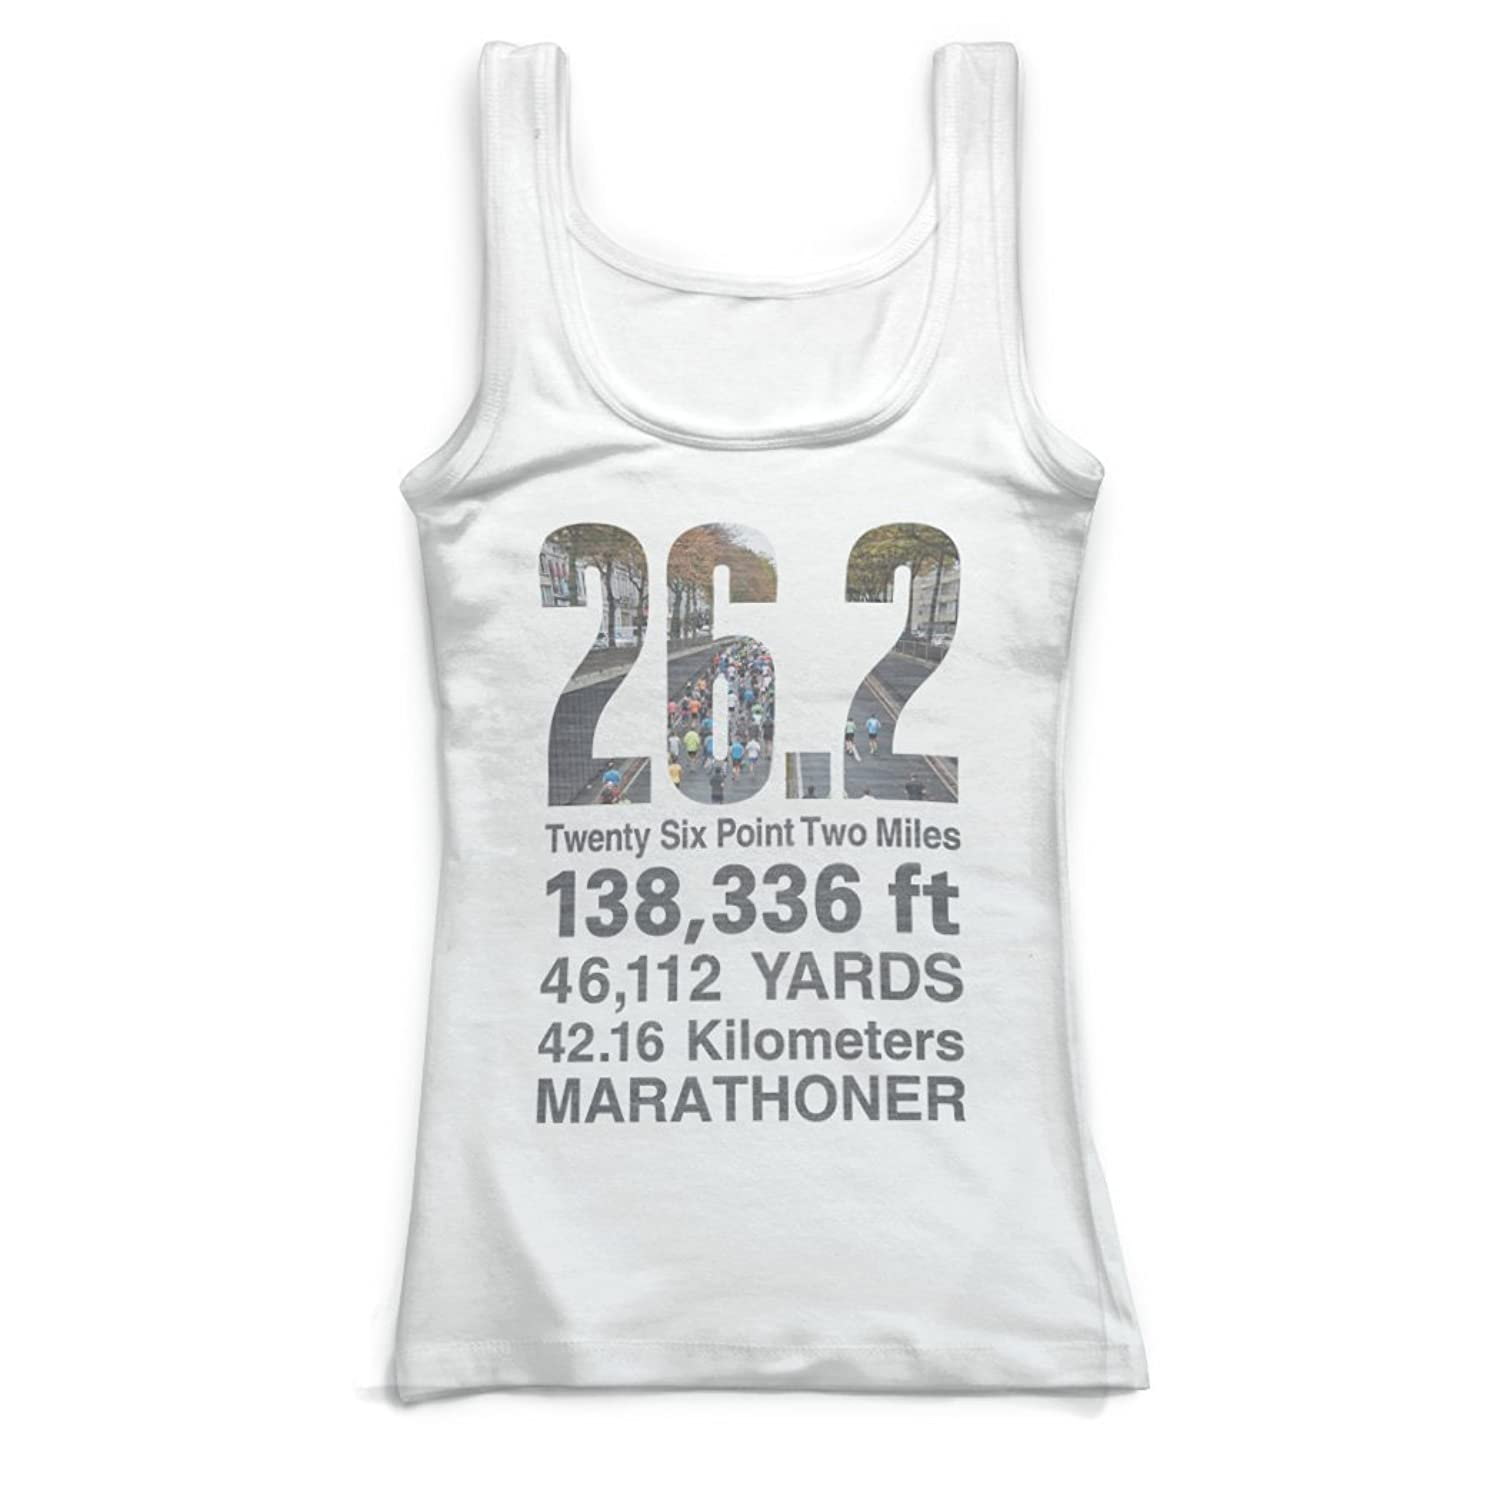 Gone For a Run Running Vintage Fitted Tank Top - 26.2 Math Miles